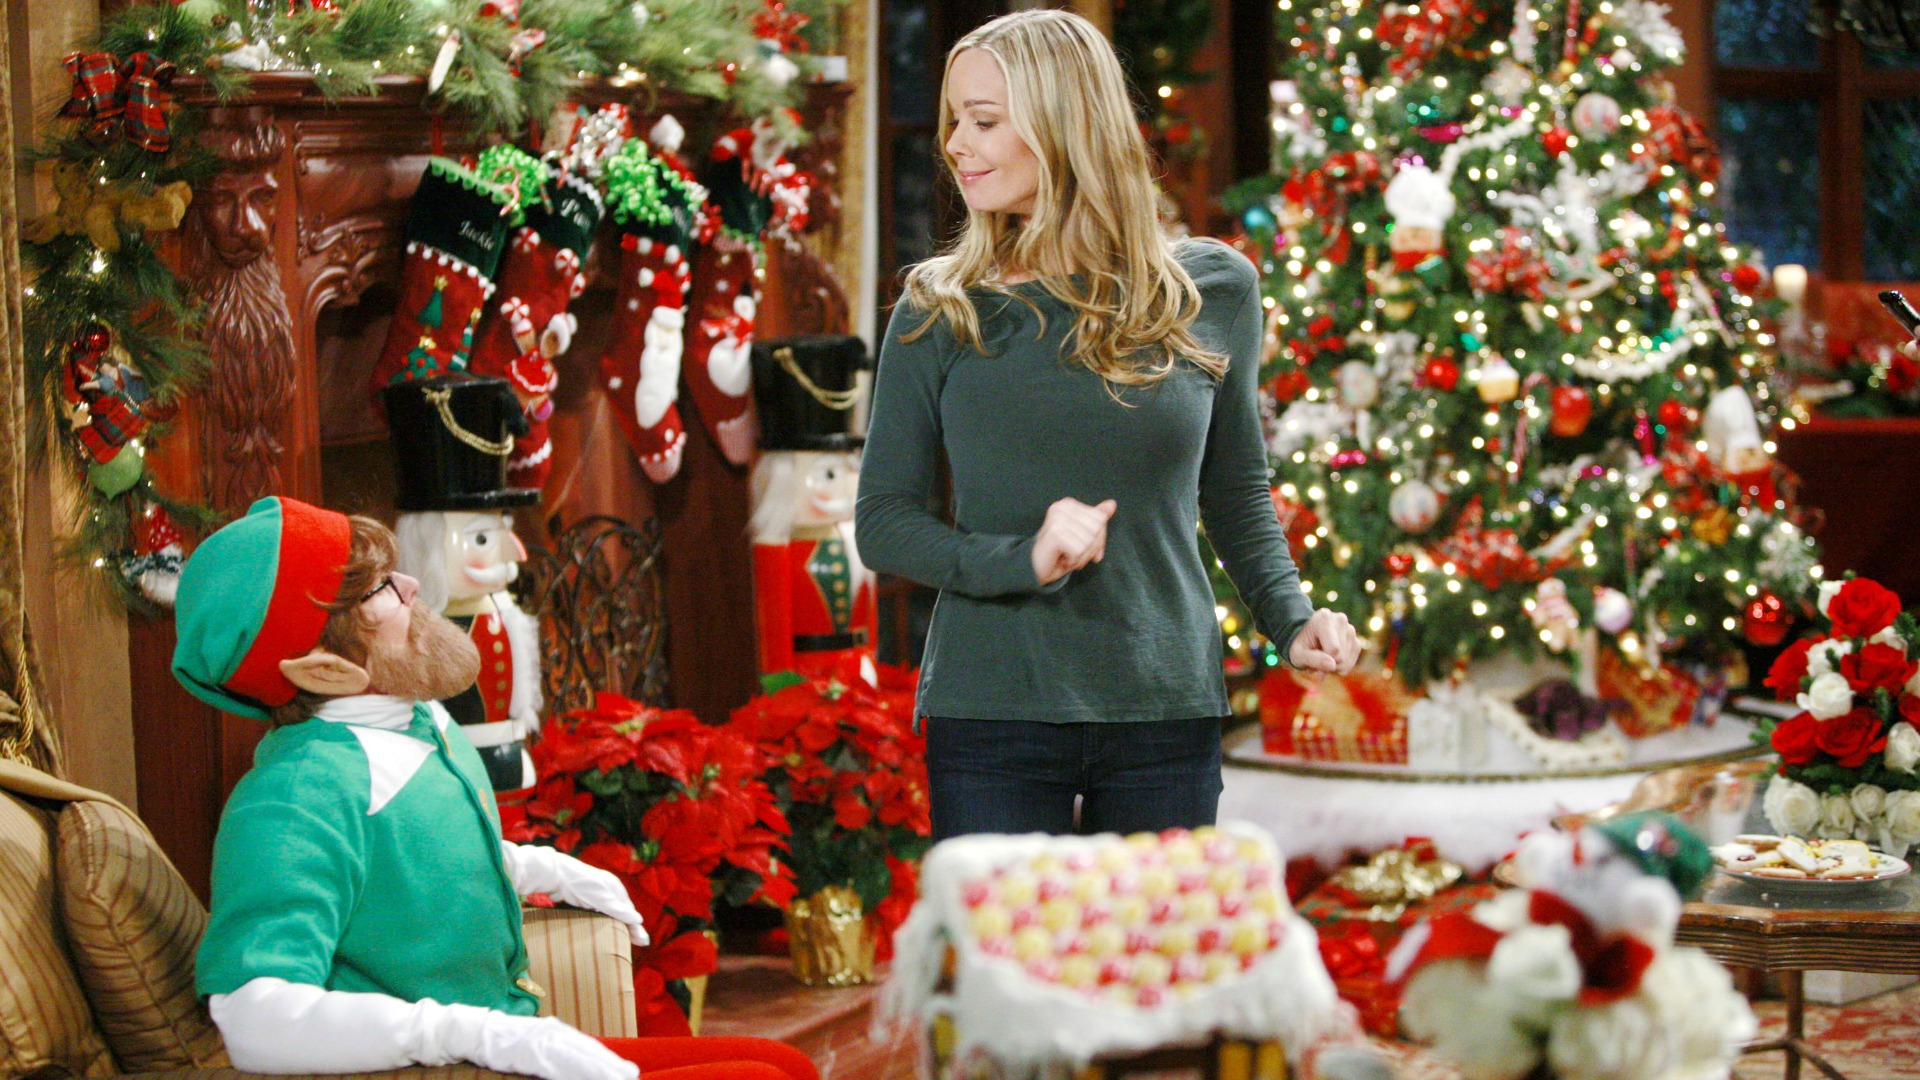 It wouldn't be Christmas without an elf—or Donna Logan!